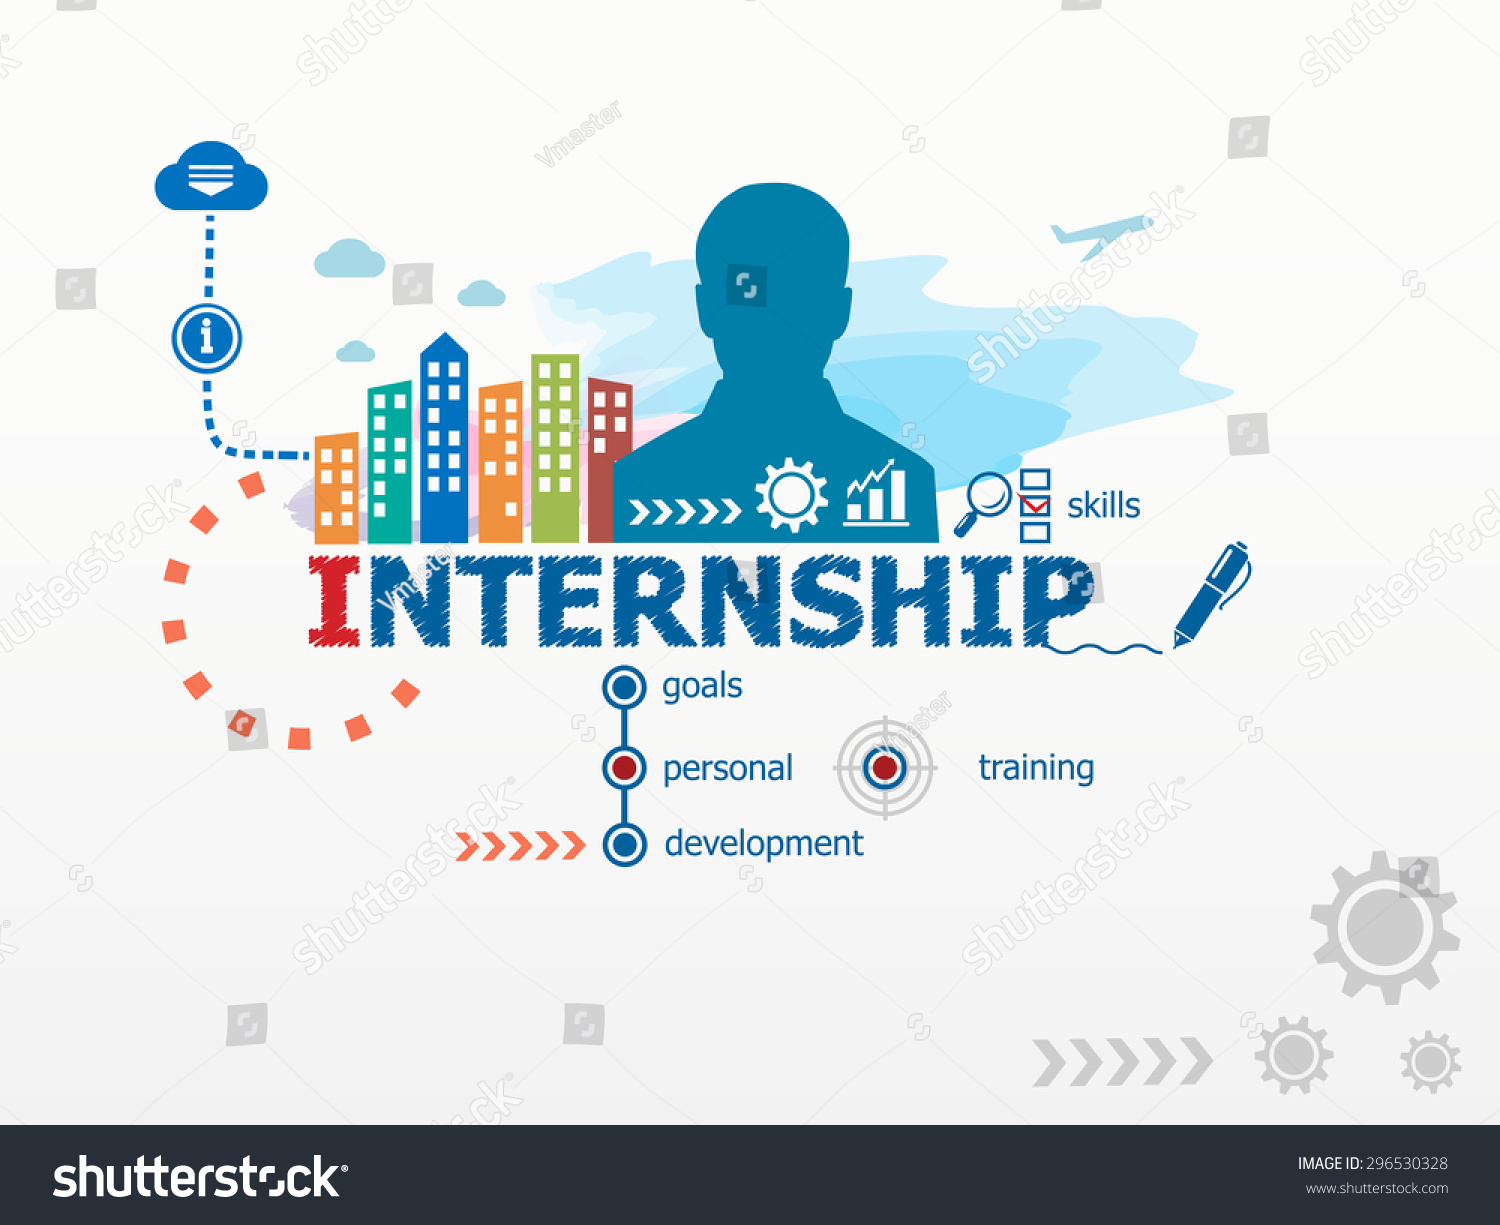 Internship concept business man flat design stock vector for Design consultancy internship